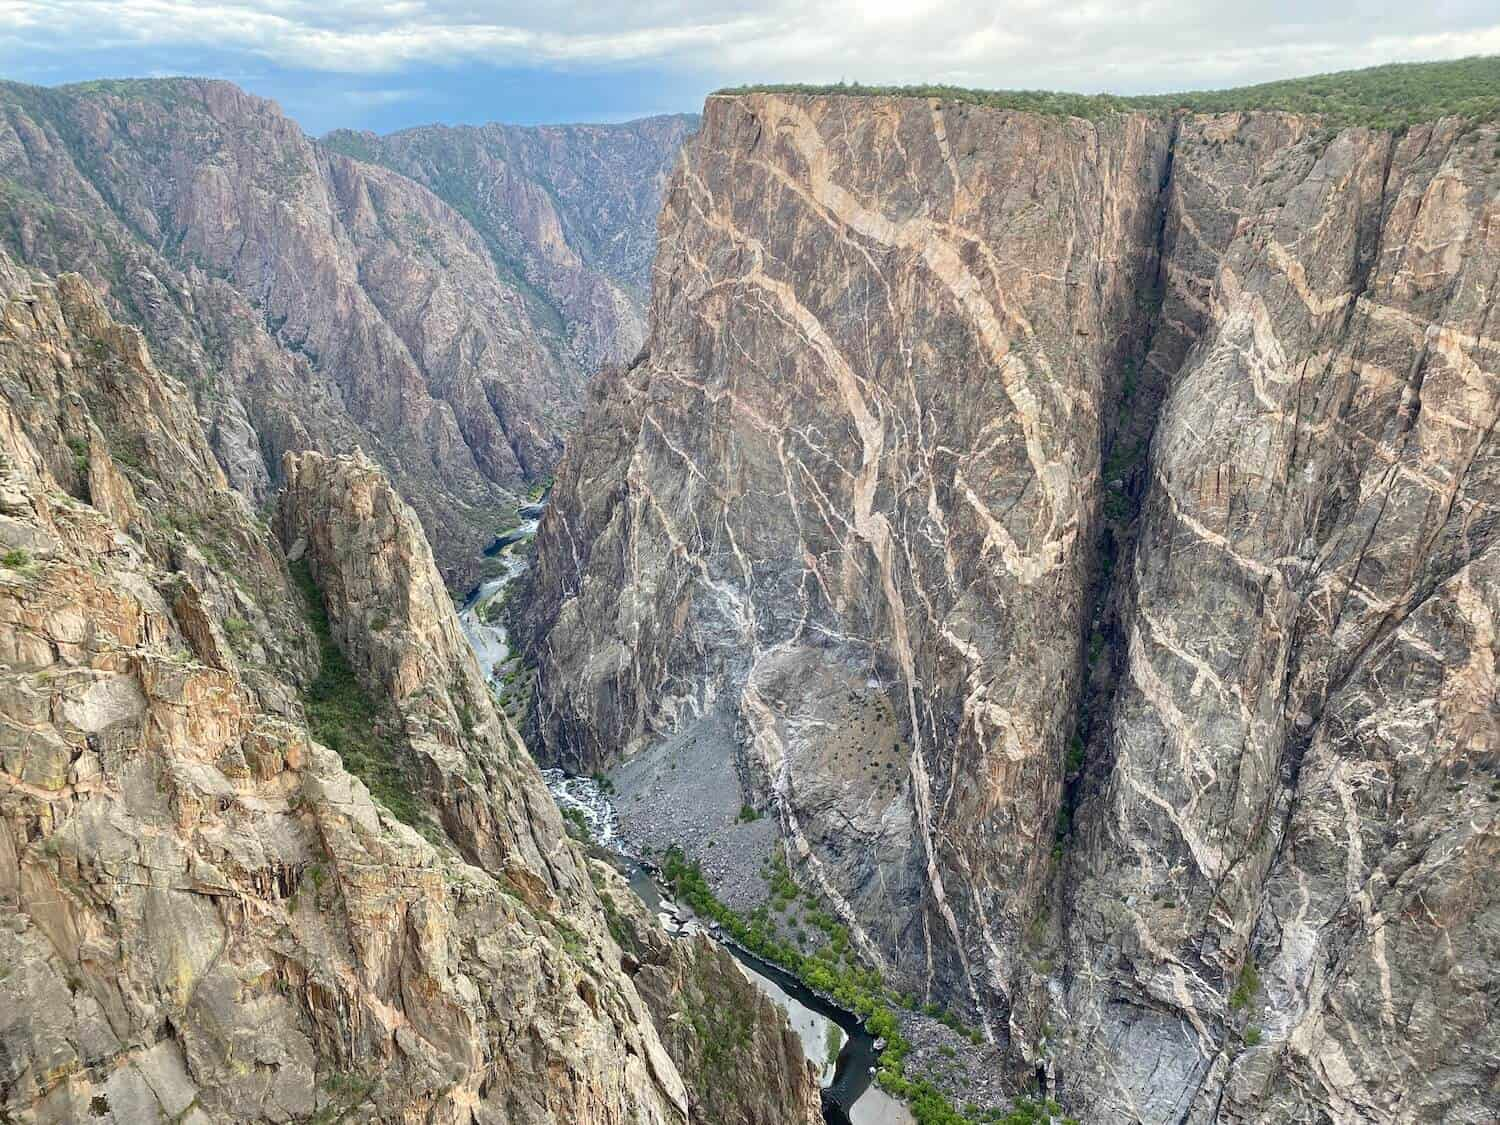 National Parks in Colorado - Black Canyon of the Gunnison